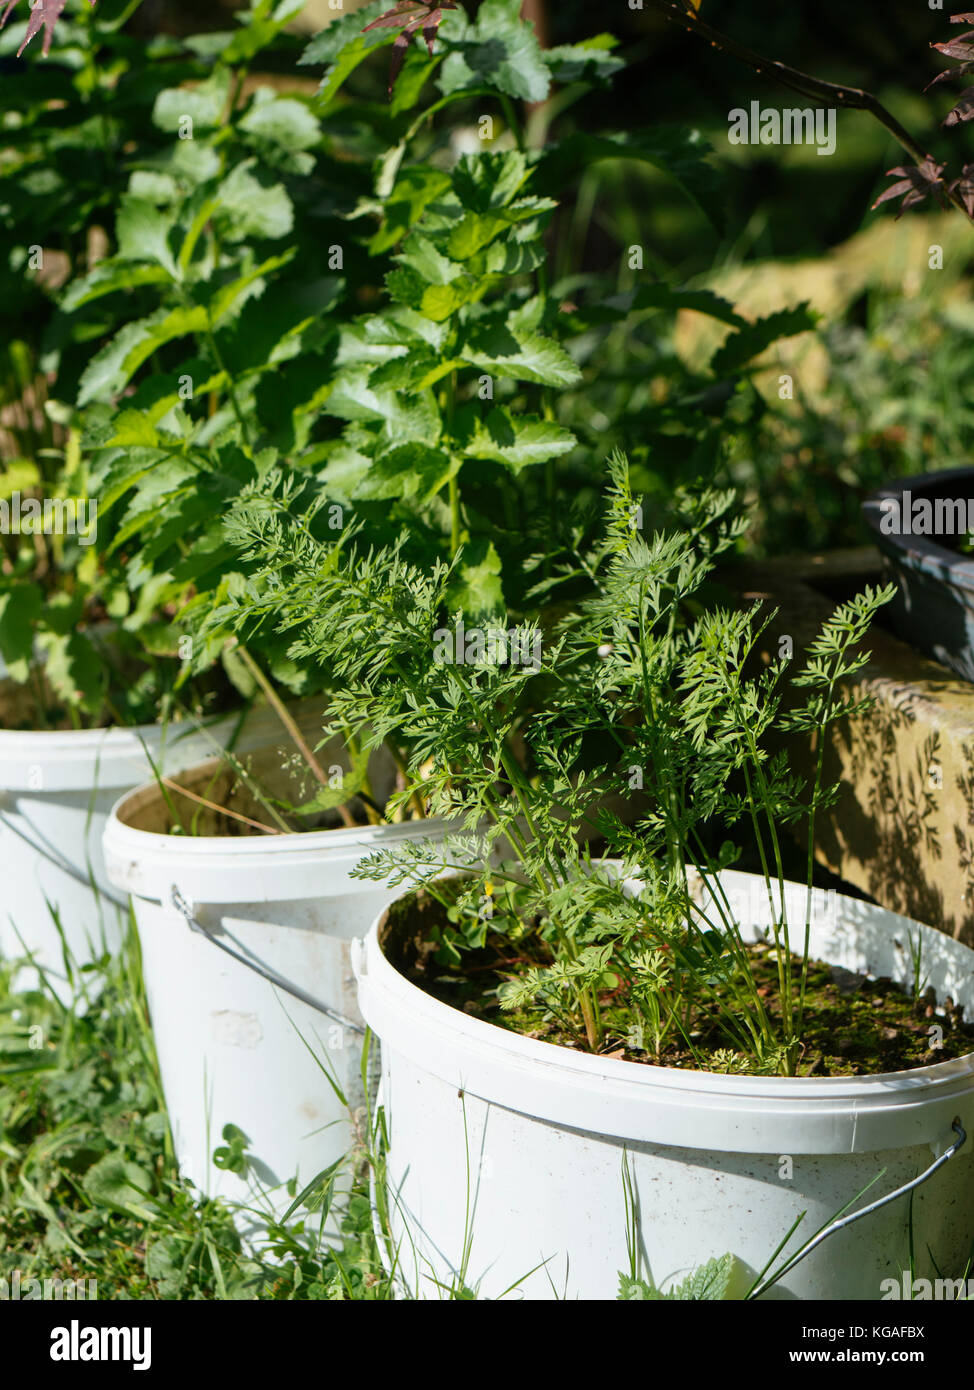 Carrots and parsnip growing in old paint buckets. - Stock Image